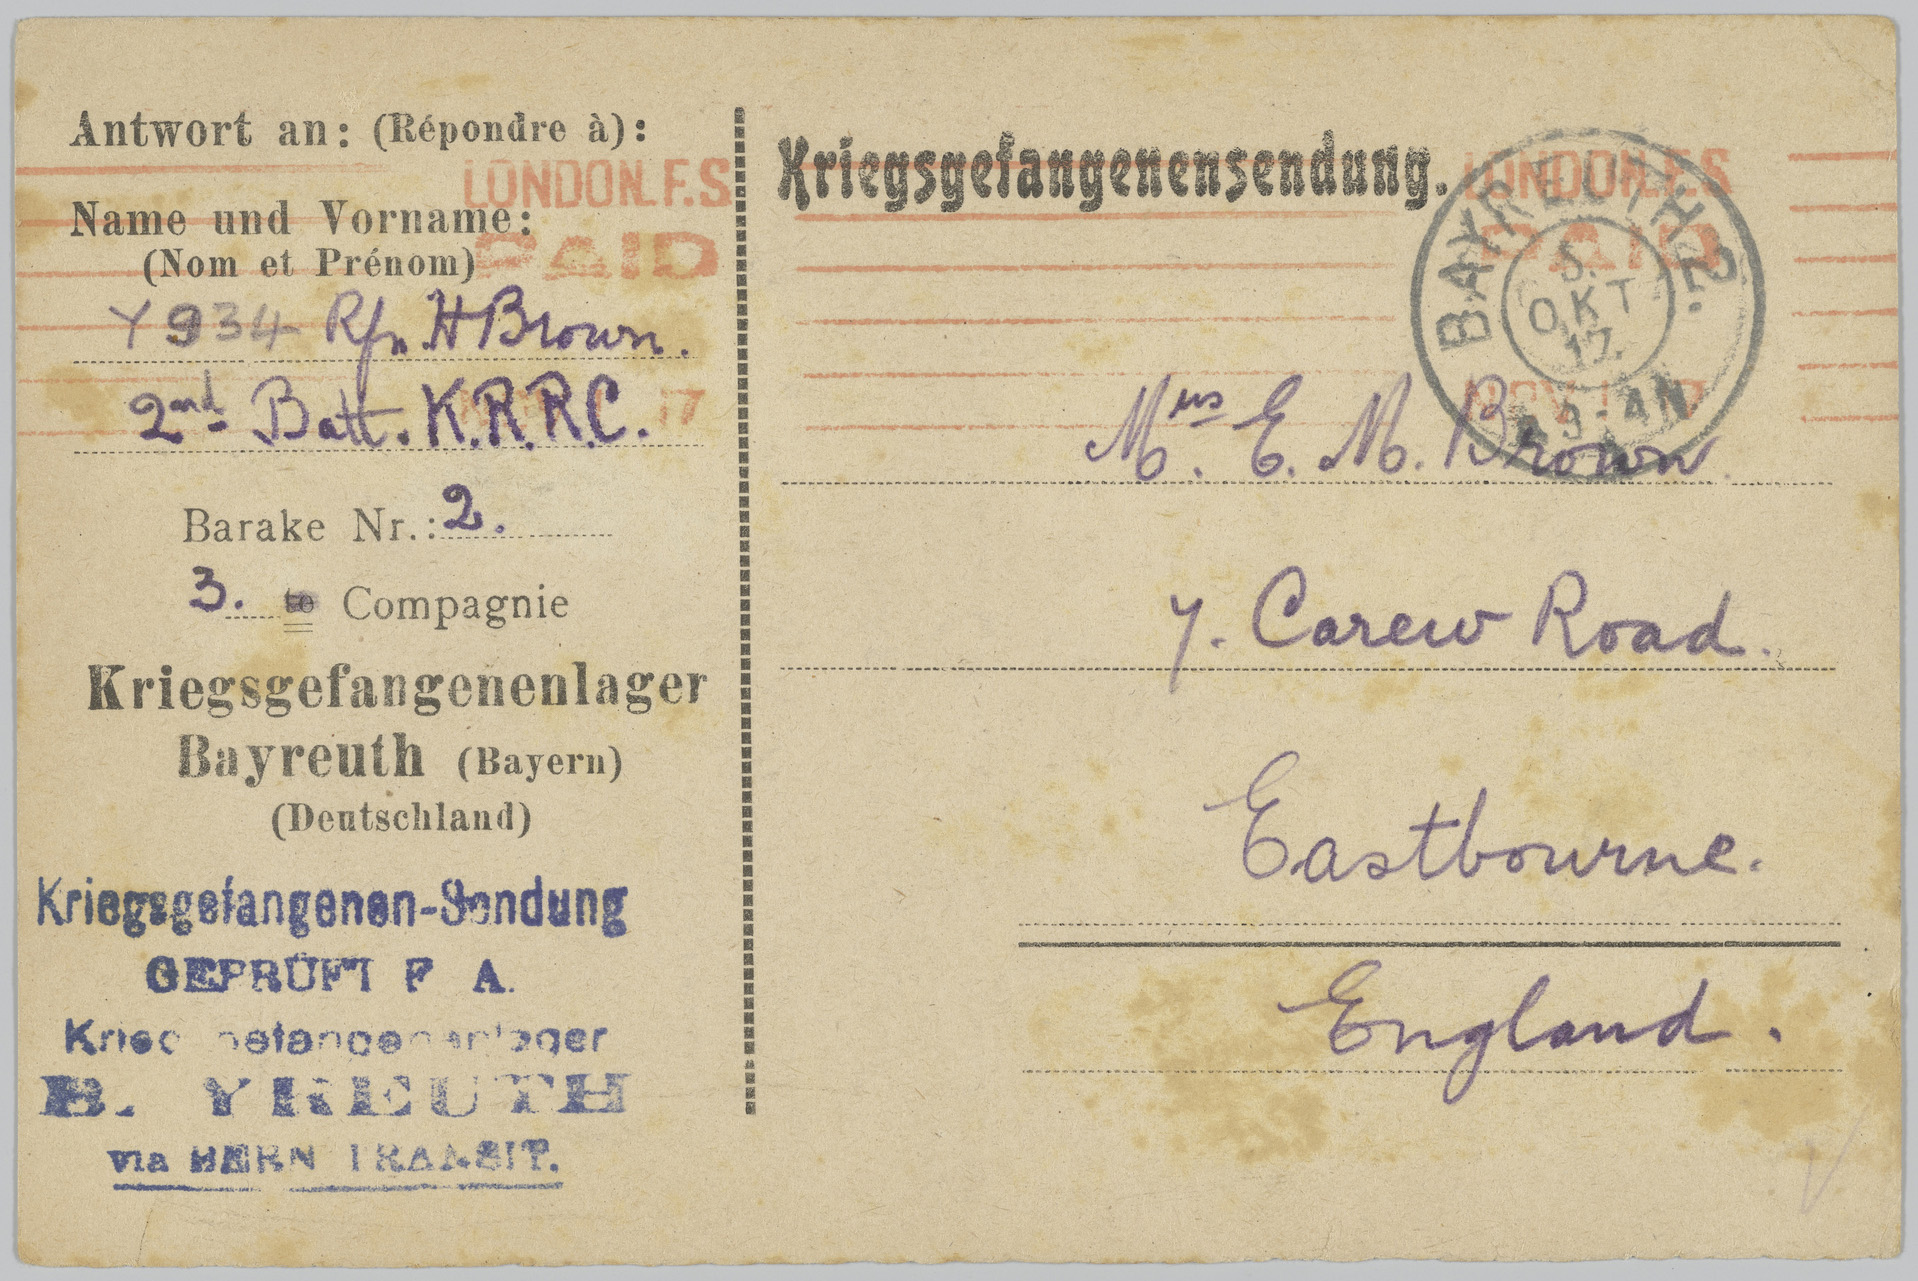 German prisoner of war postcard including the name of the soldier and the address of the recipient.